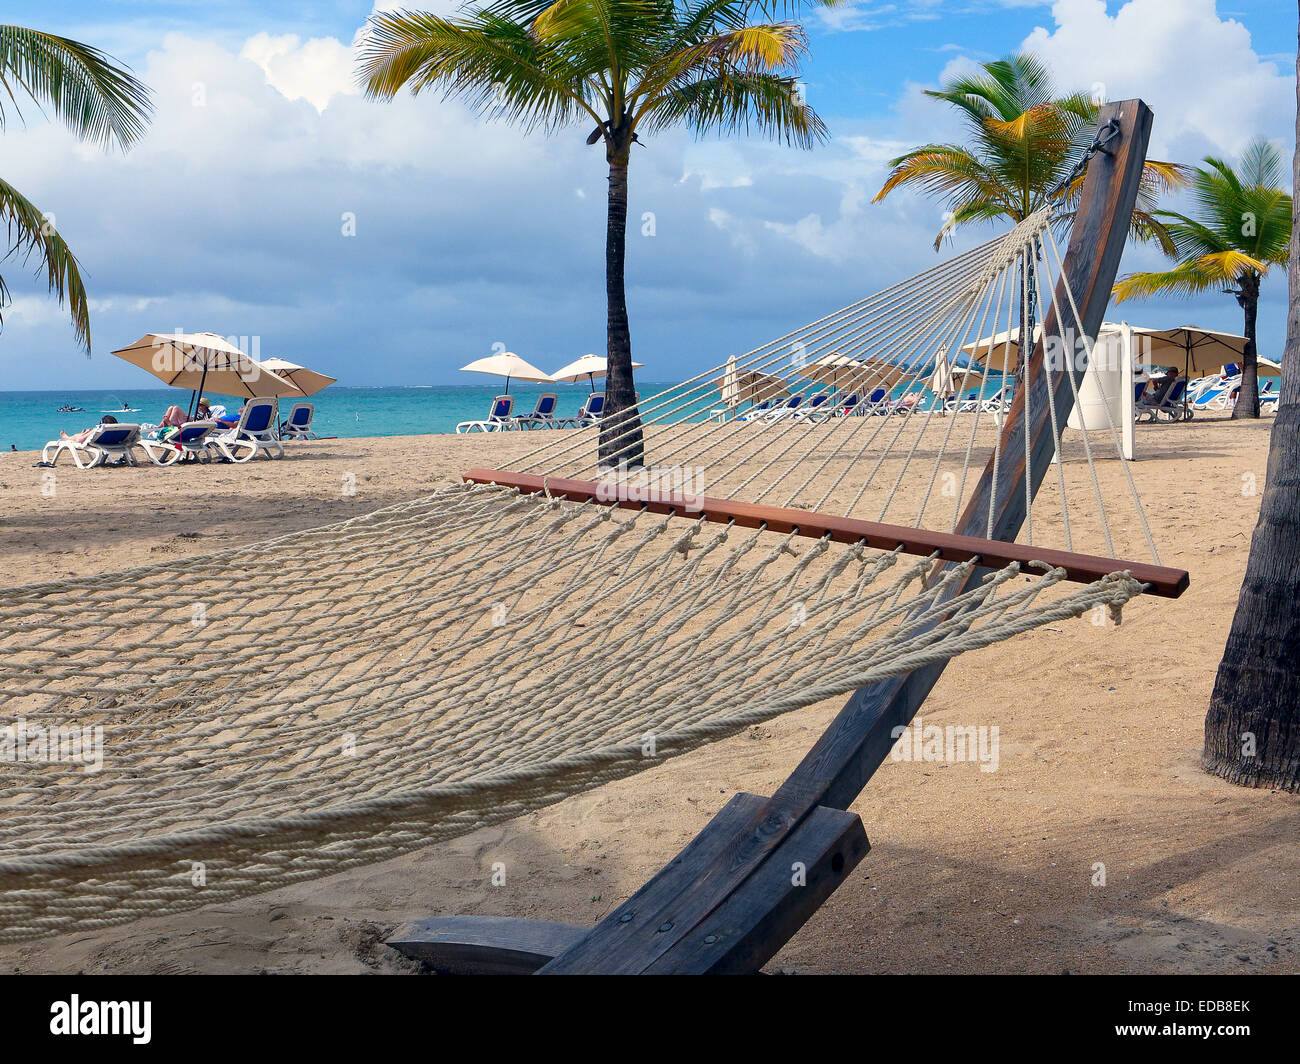 Close Up View of a Hammock on a Beach, Isla Verde, Puerto Rico - Stock Image